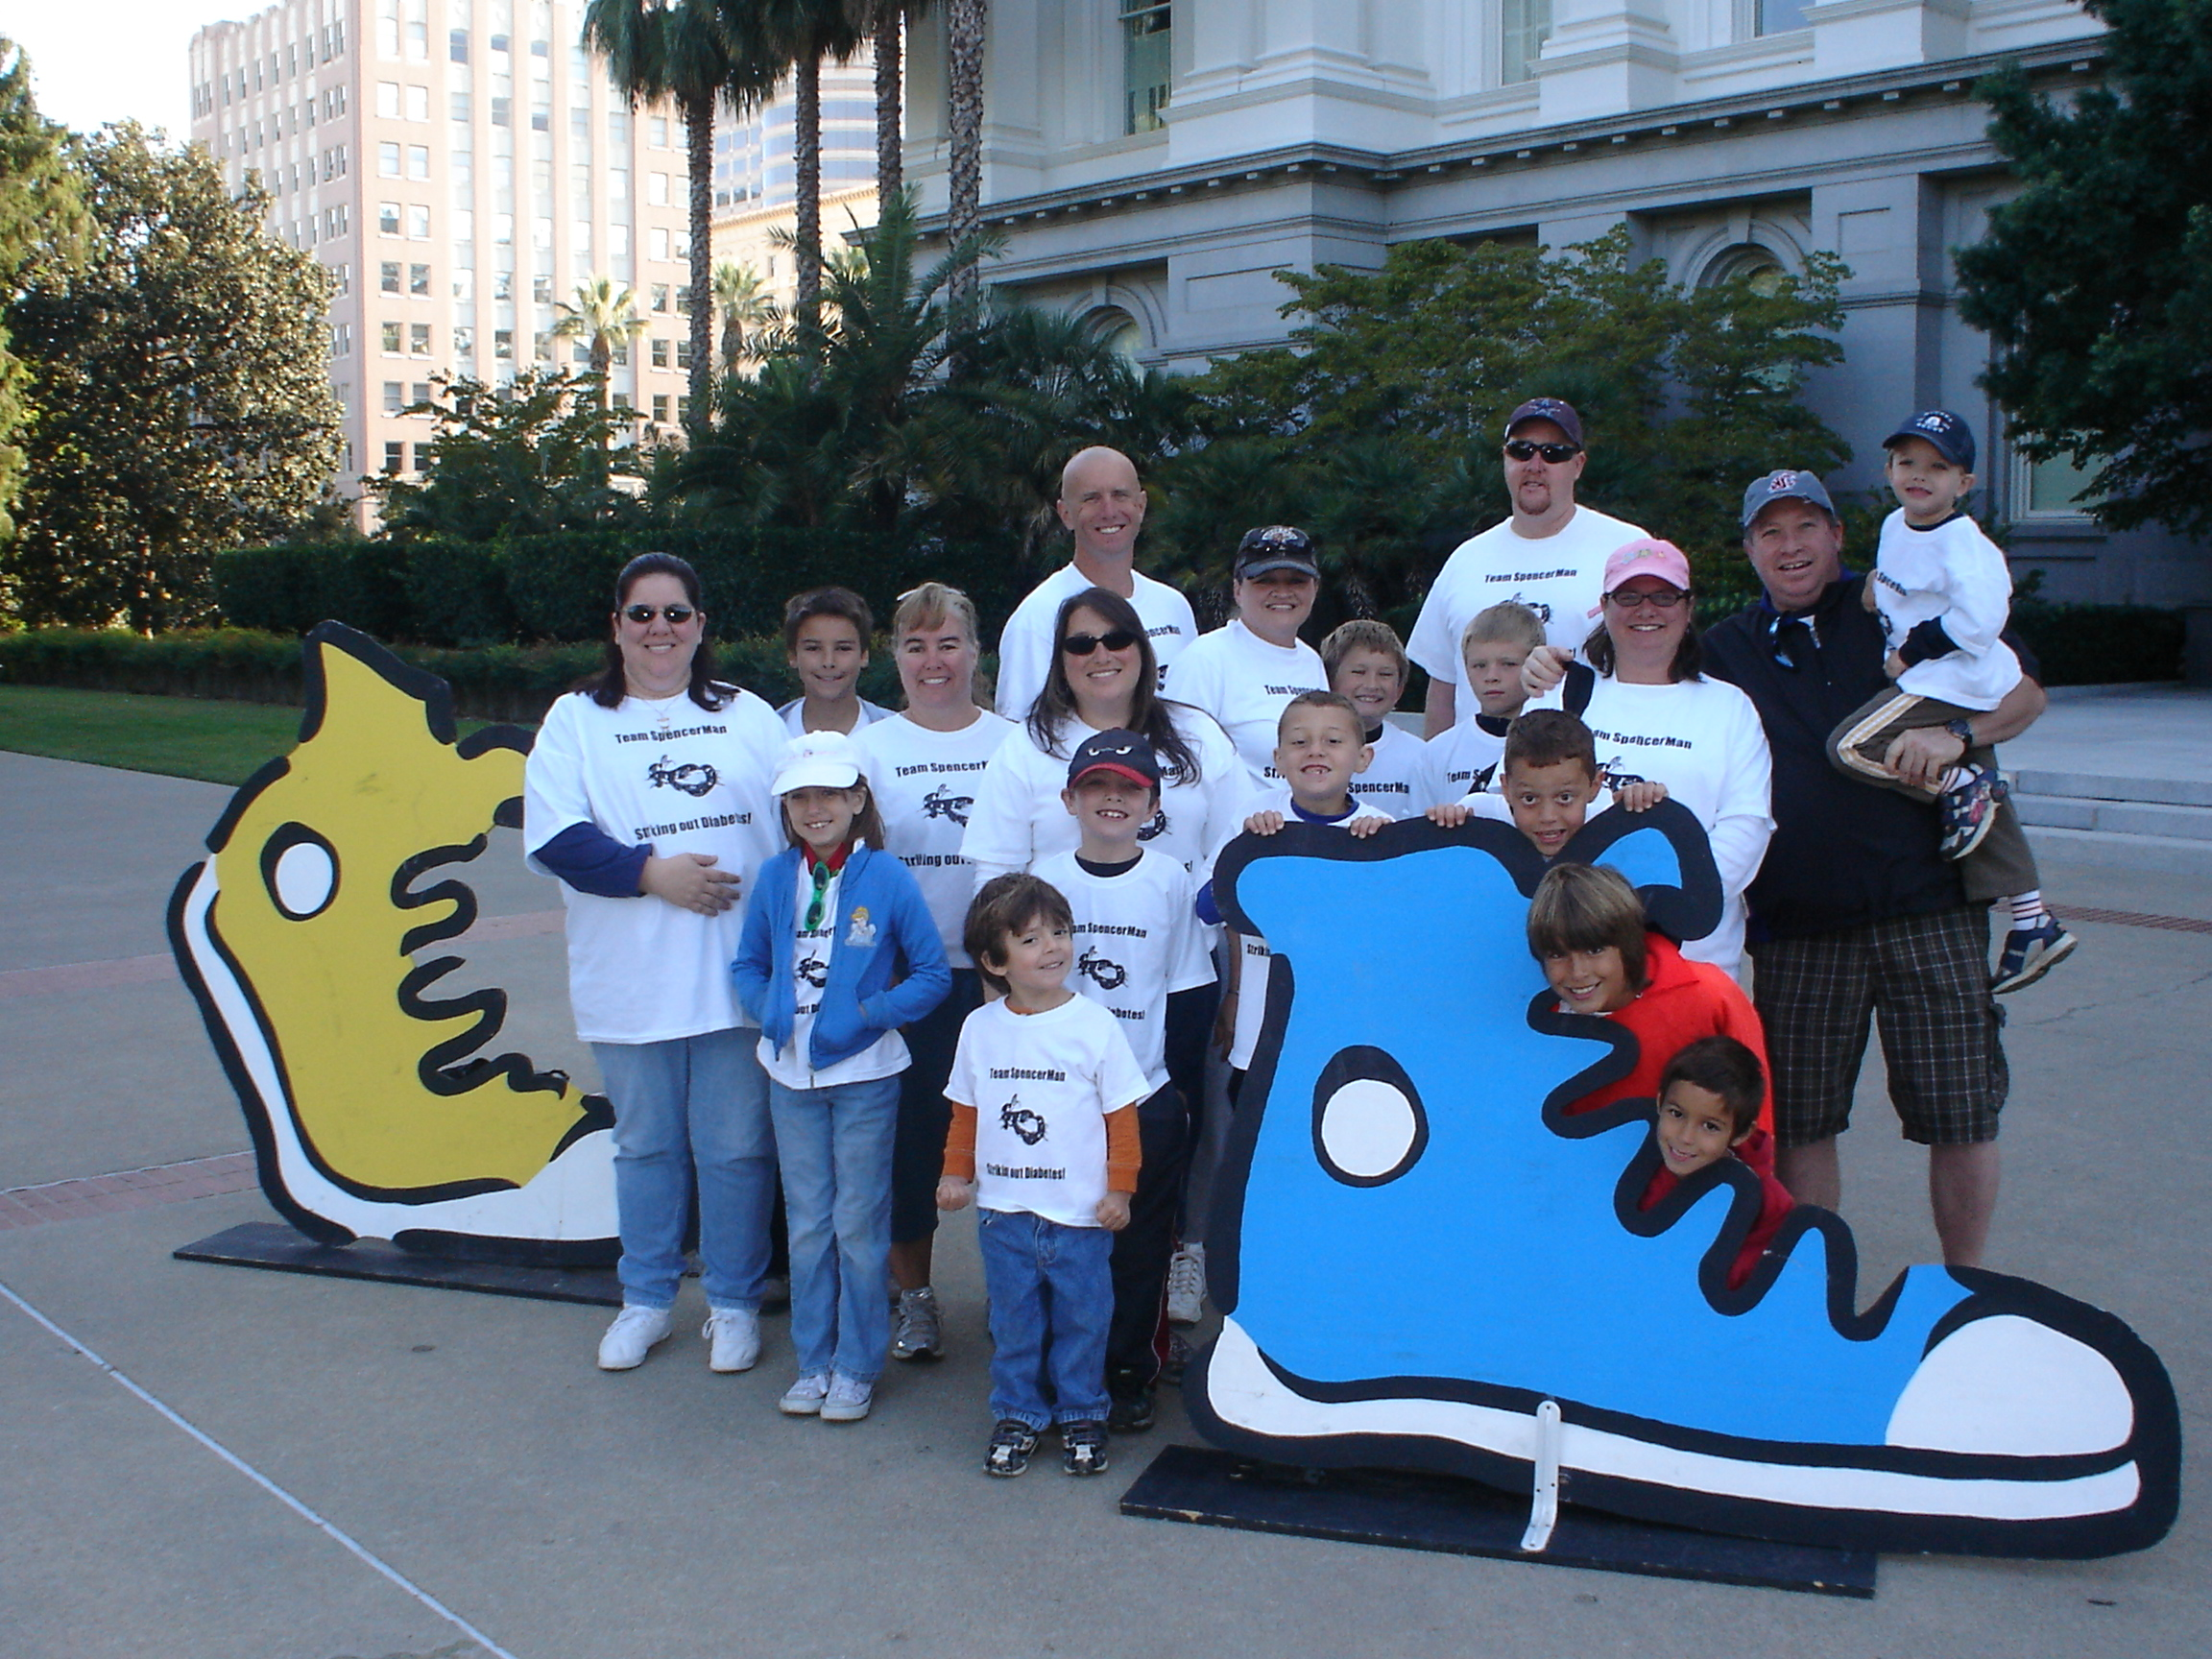 Custom T Shirts For 2009 Jdrf Walk To Cure Diabetes